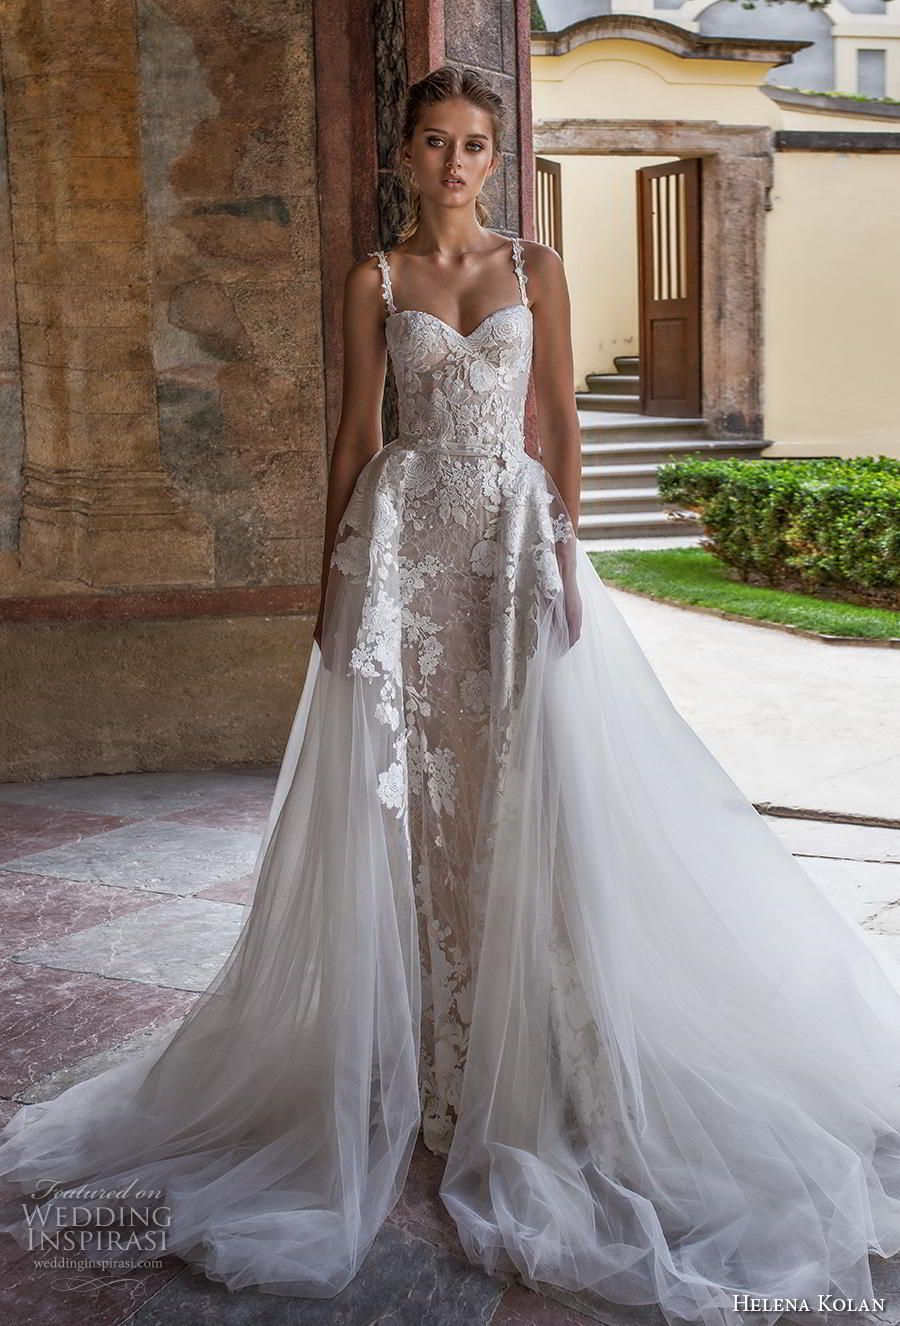 helena kolan 2019 bridal sleeveless thin strap sweetheart neckline full  embellishment romantic princess fit and flare wedding dress a line  overskirt sweep ... 0df23781b8ae